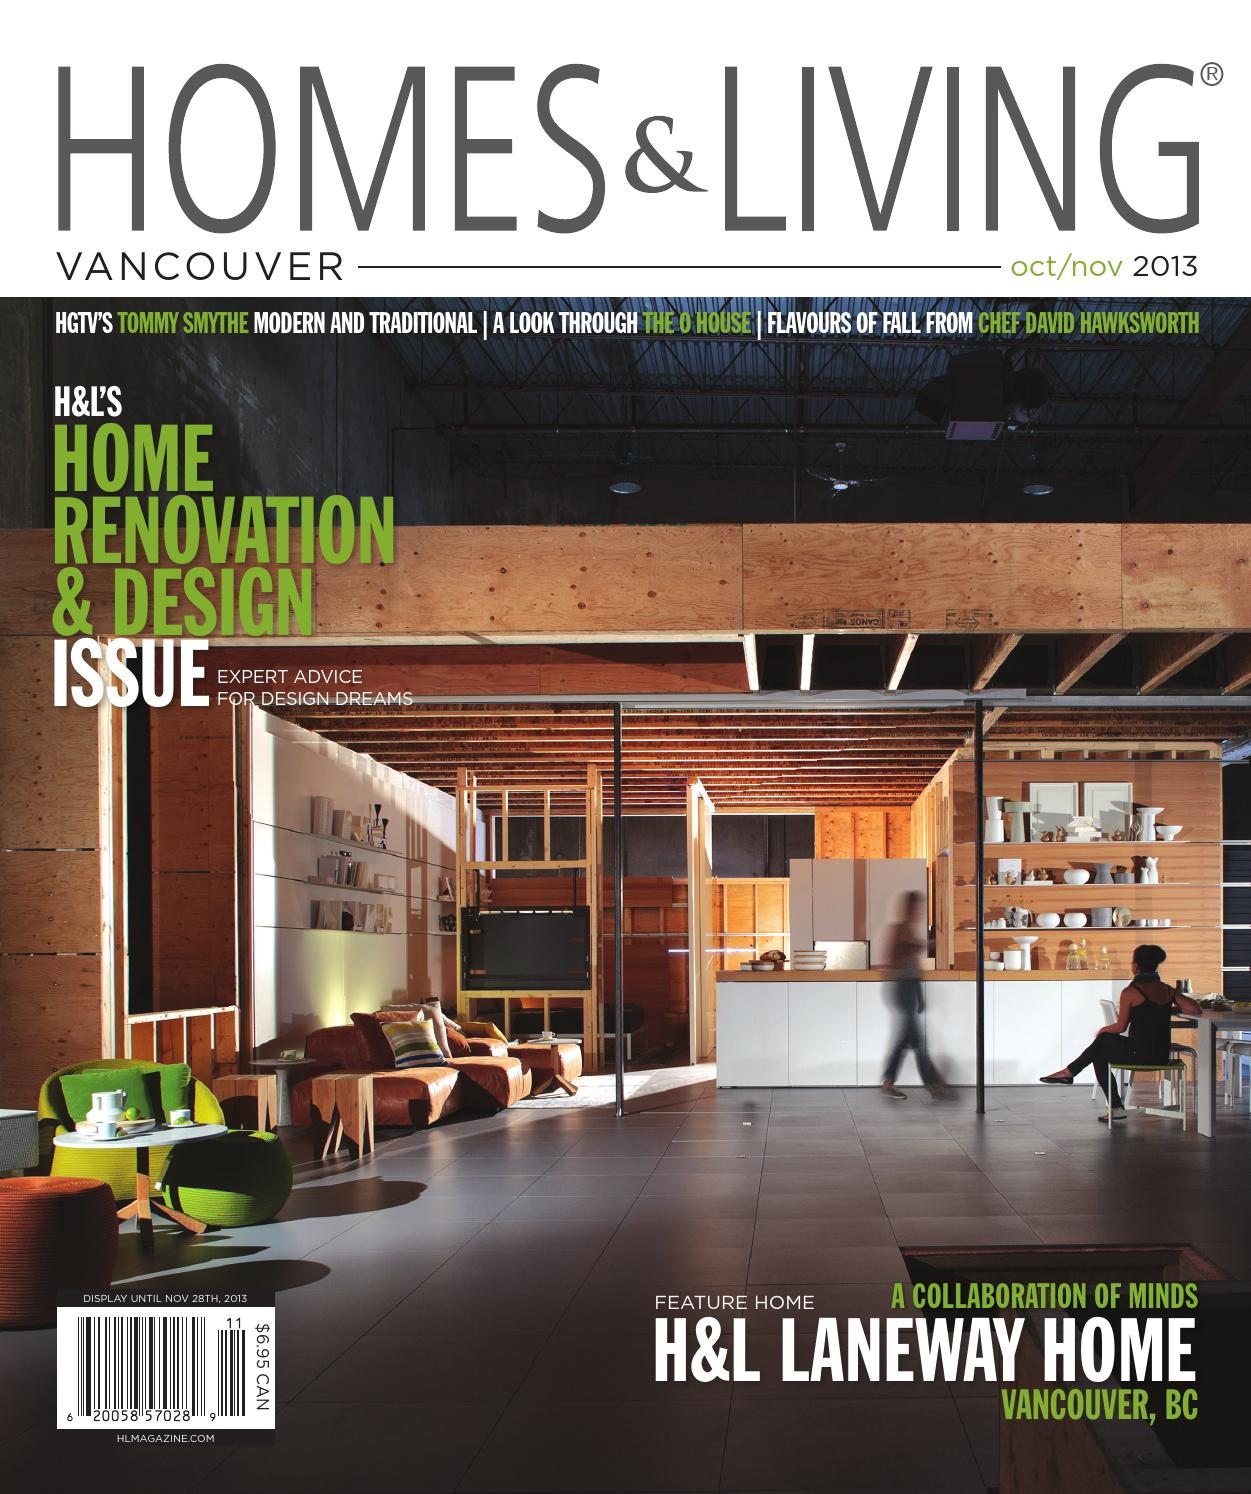 Homes Living Vancouver Oct Nov 2013 Issue By Homes